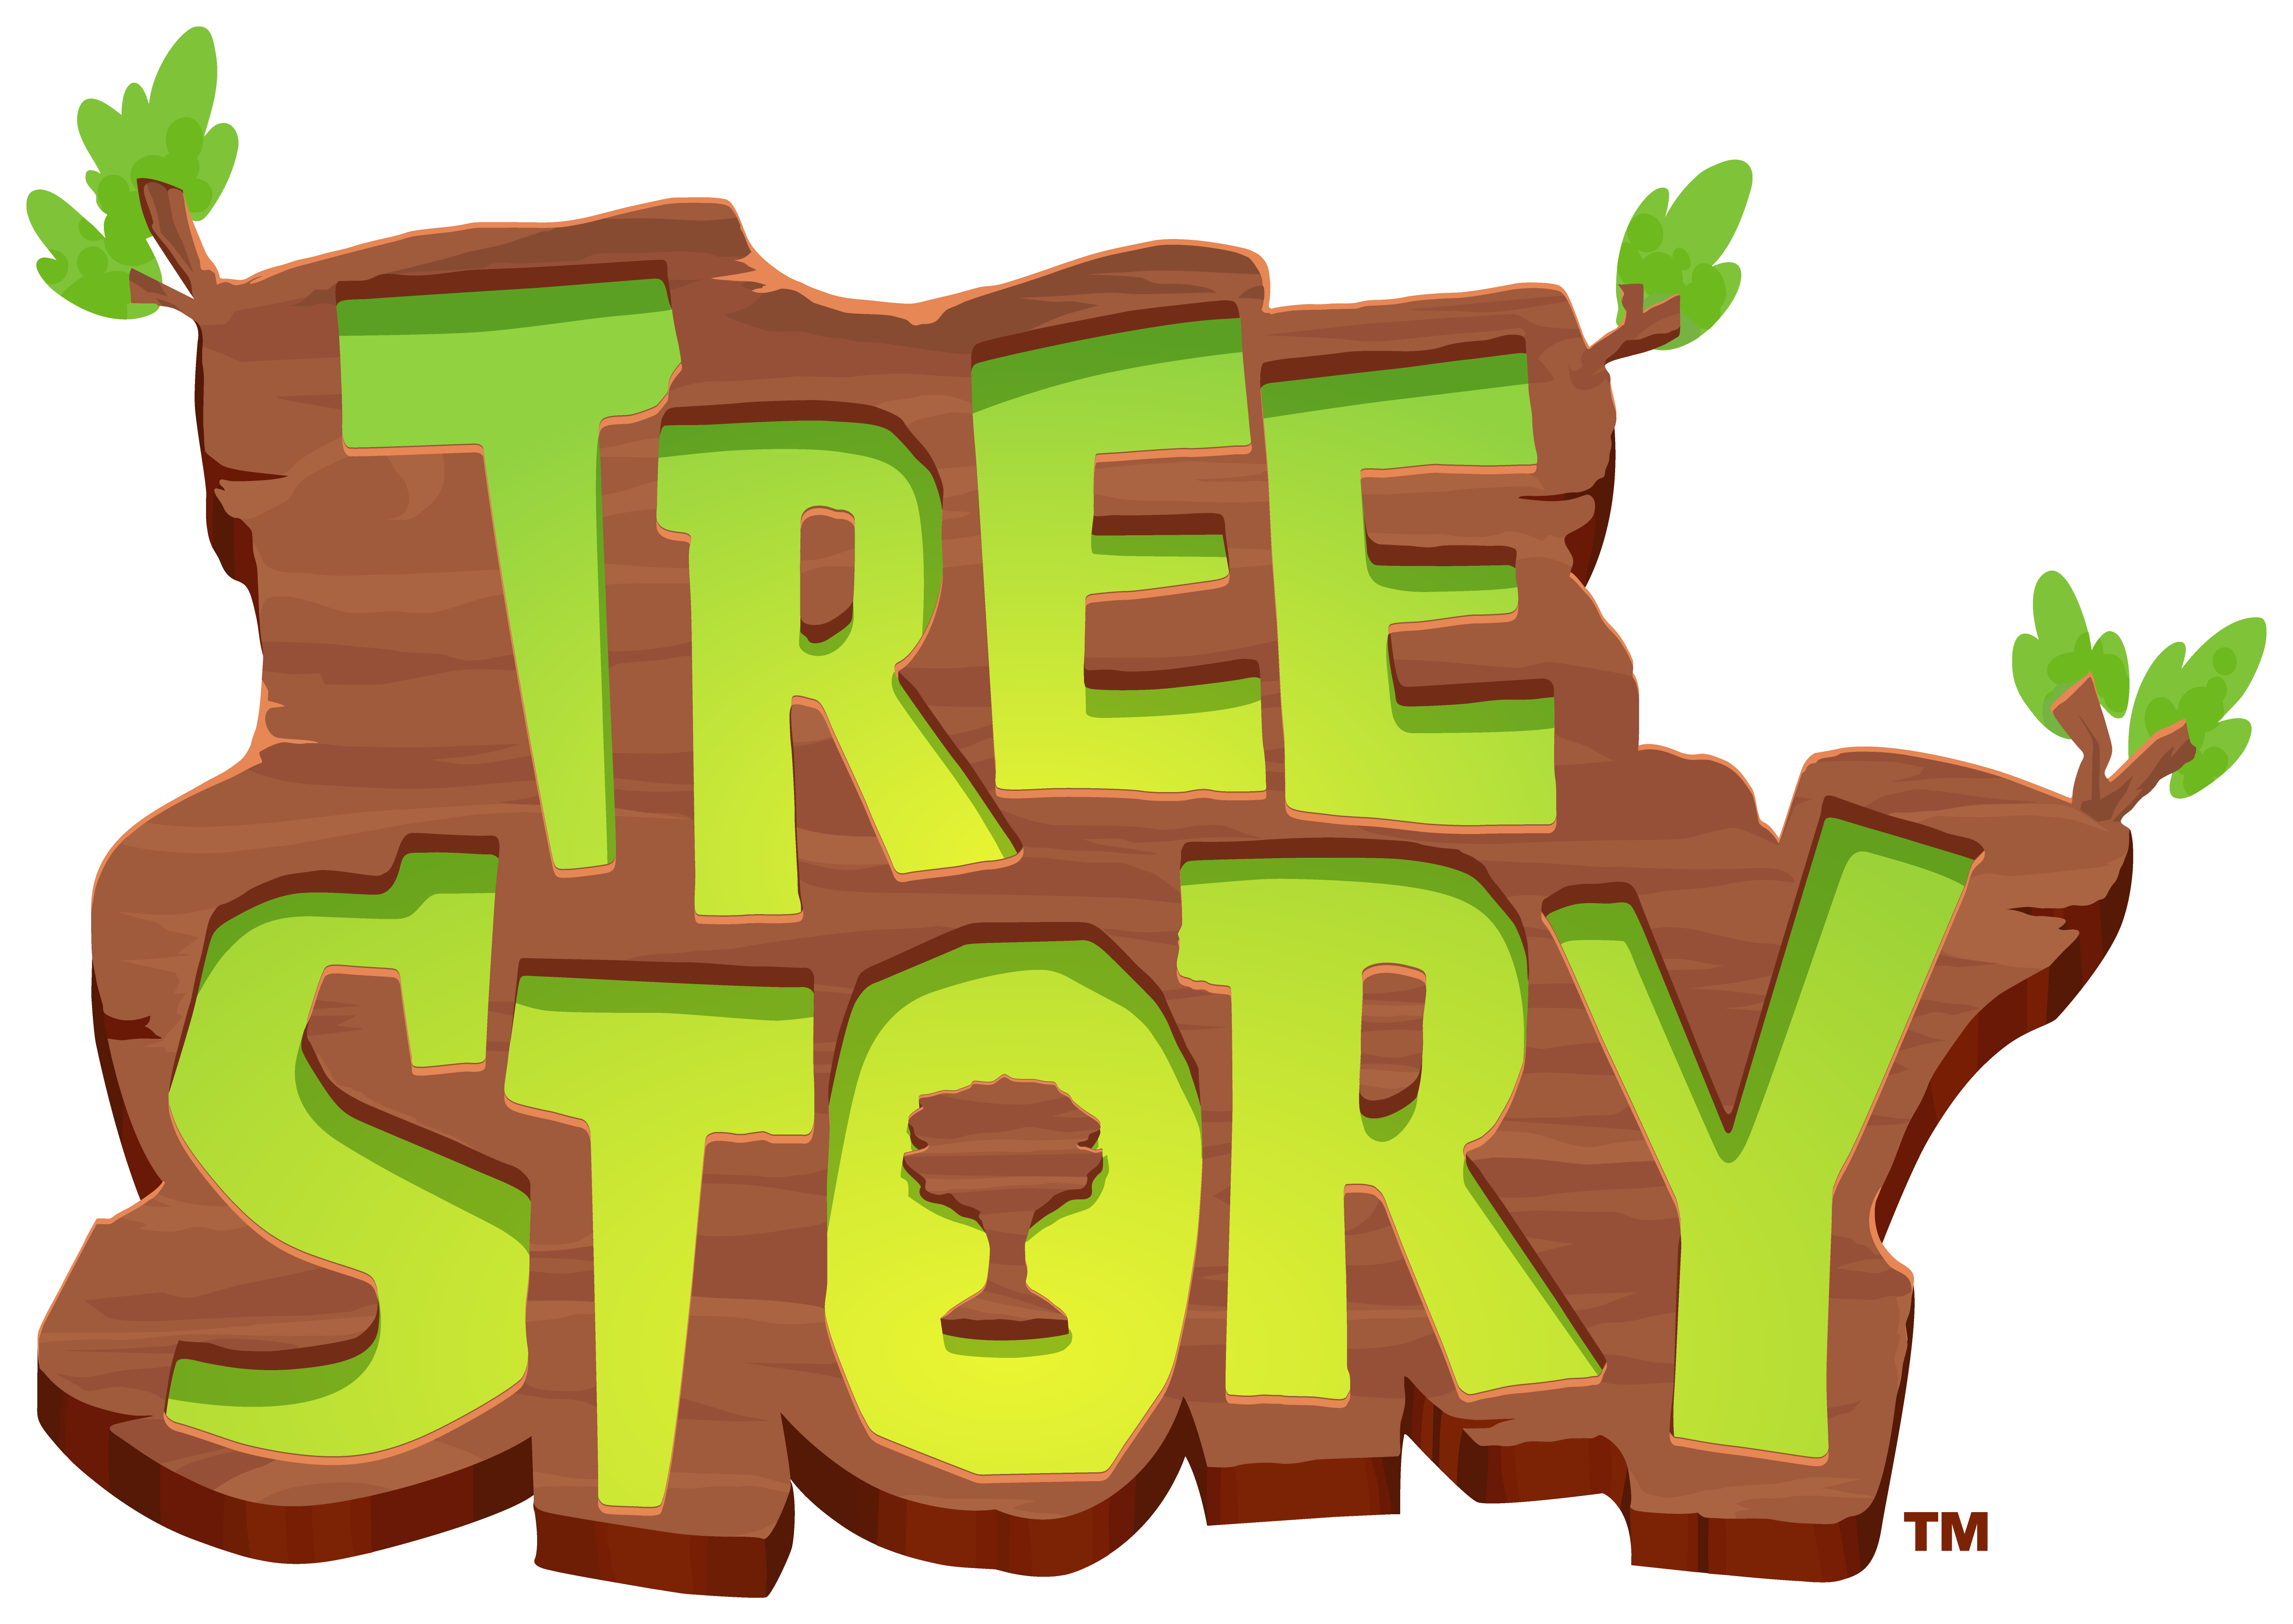 TreeStoryLogo_RGB.png (5409×3832) (With images) Game